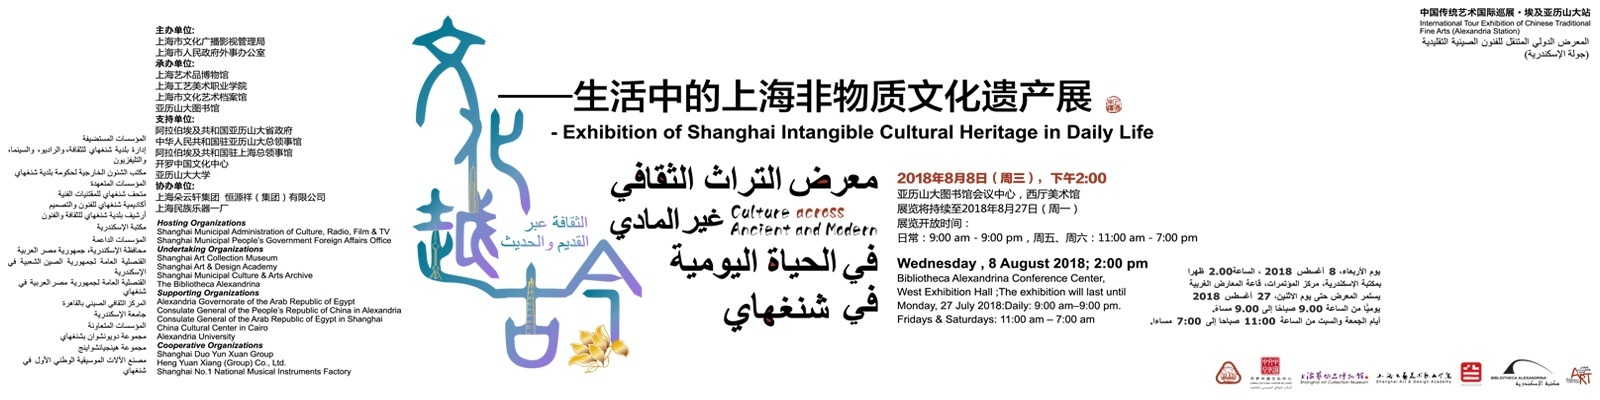 Shanghai Intangible Cultural Heritage in Daily Life